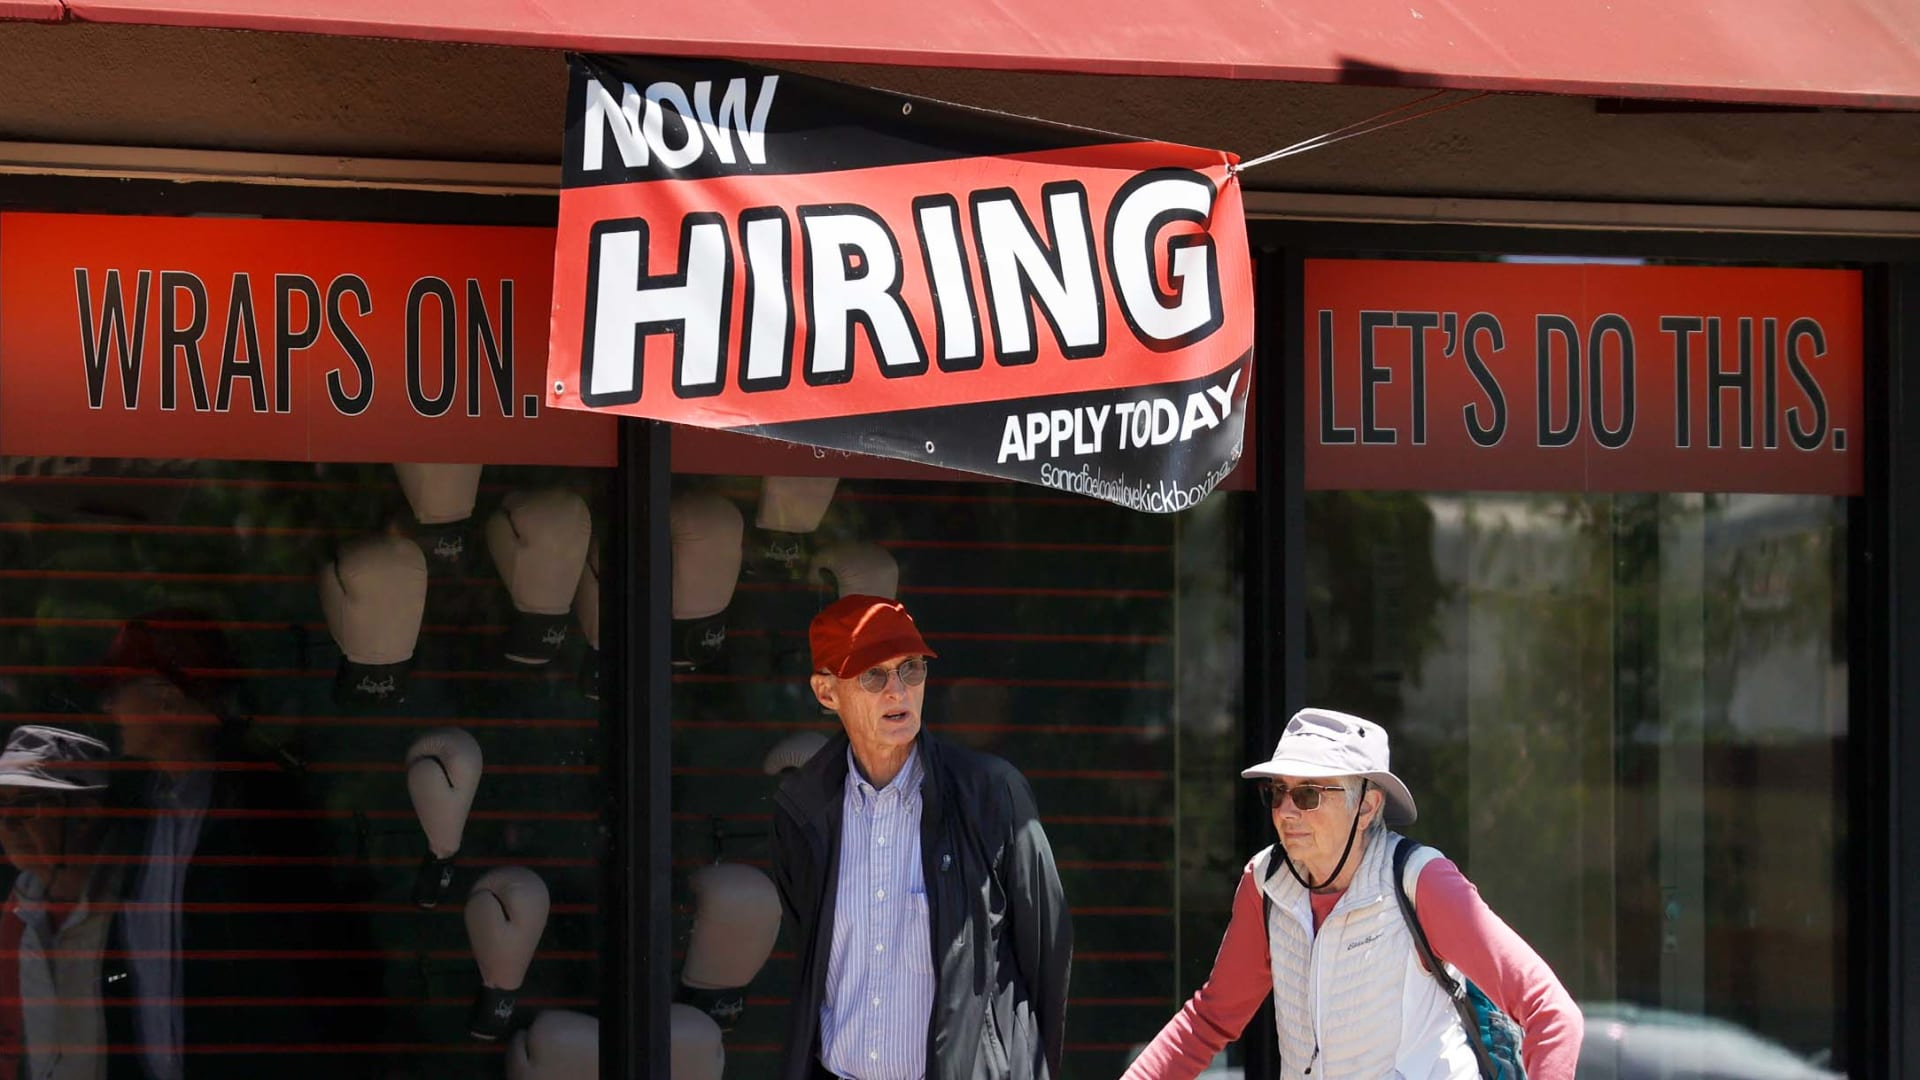 """Pedestrians walk by a """"Now Hiring"""" sign in front of a boxing gym on July 07, 2021 in San Rafael, California."""